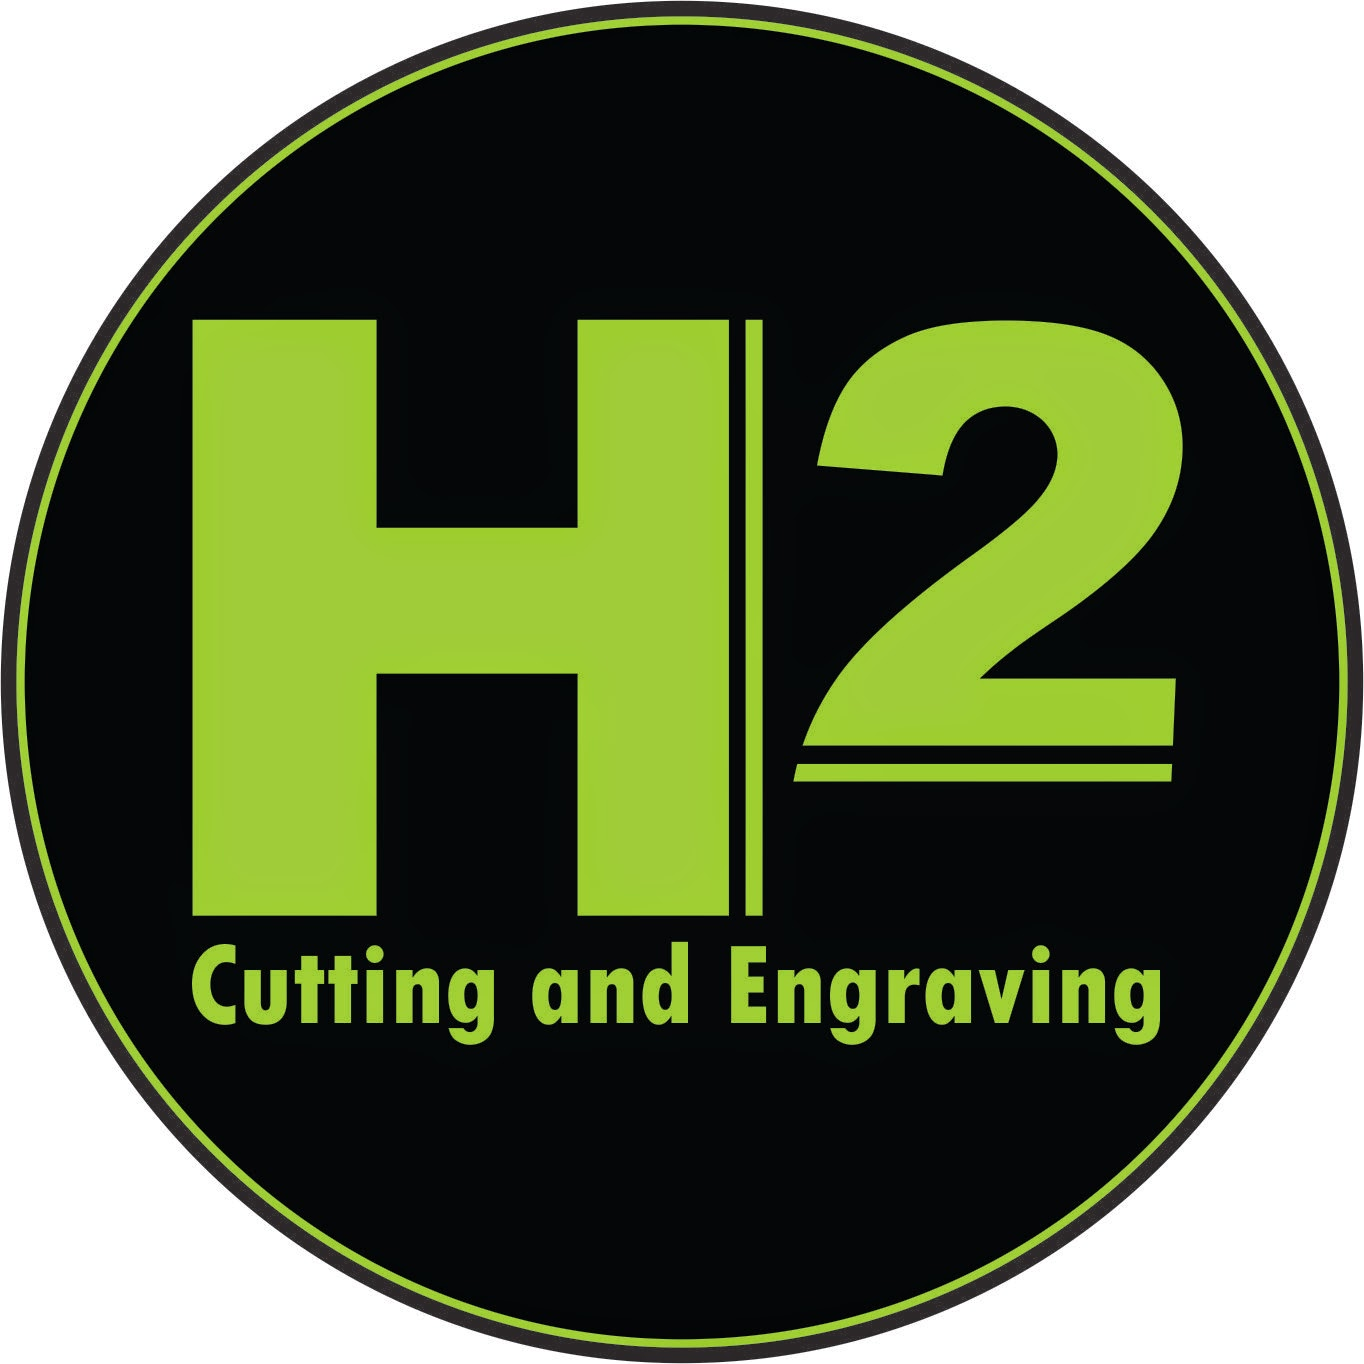 H2 Cutting and Engraving